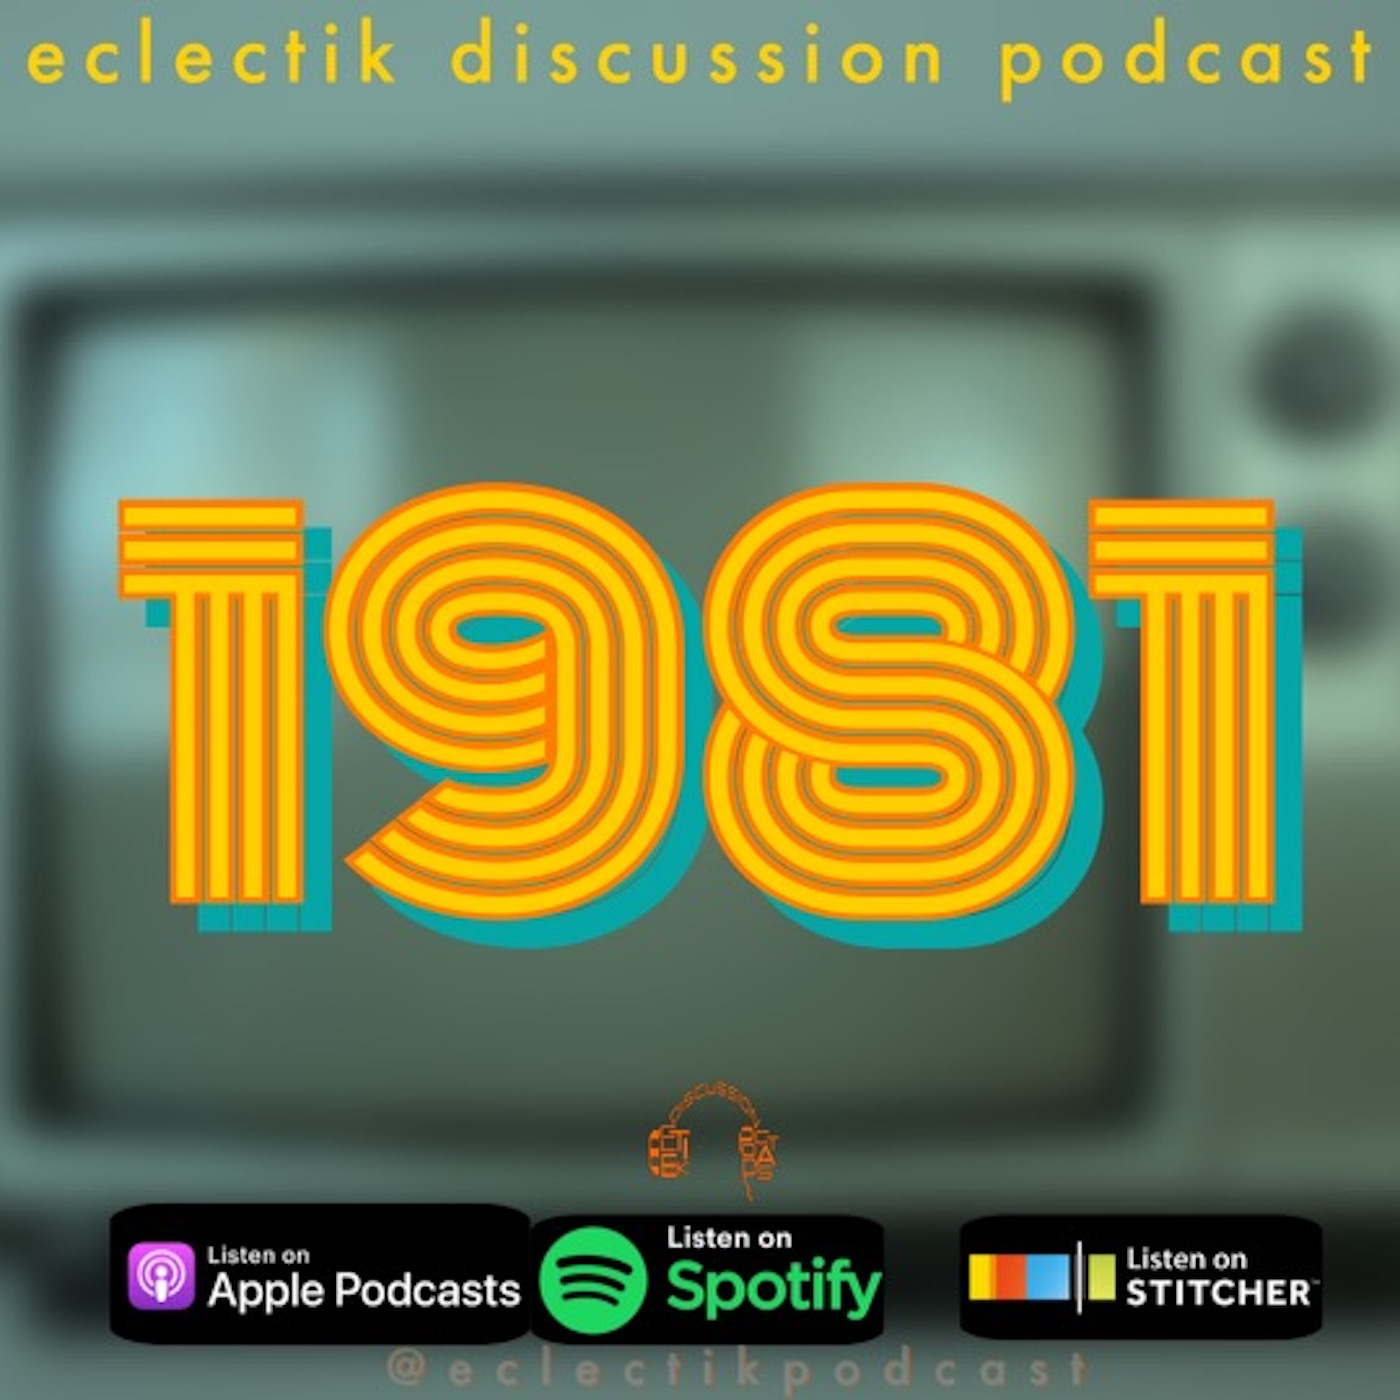 Artwork for podcast eclectik Discussion Podcast